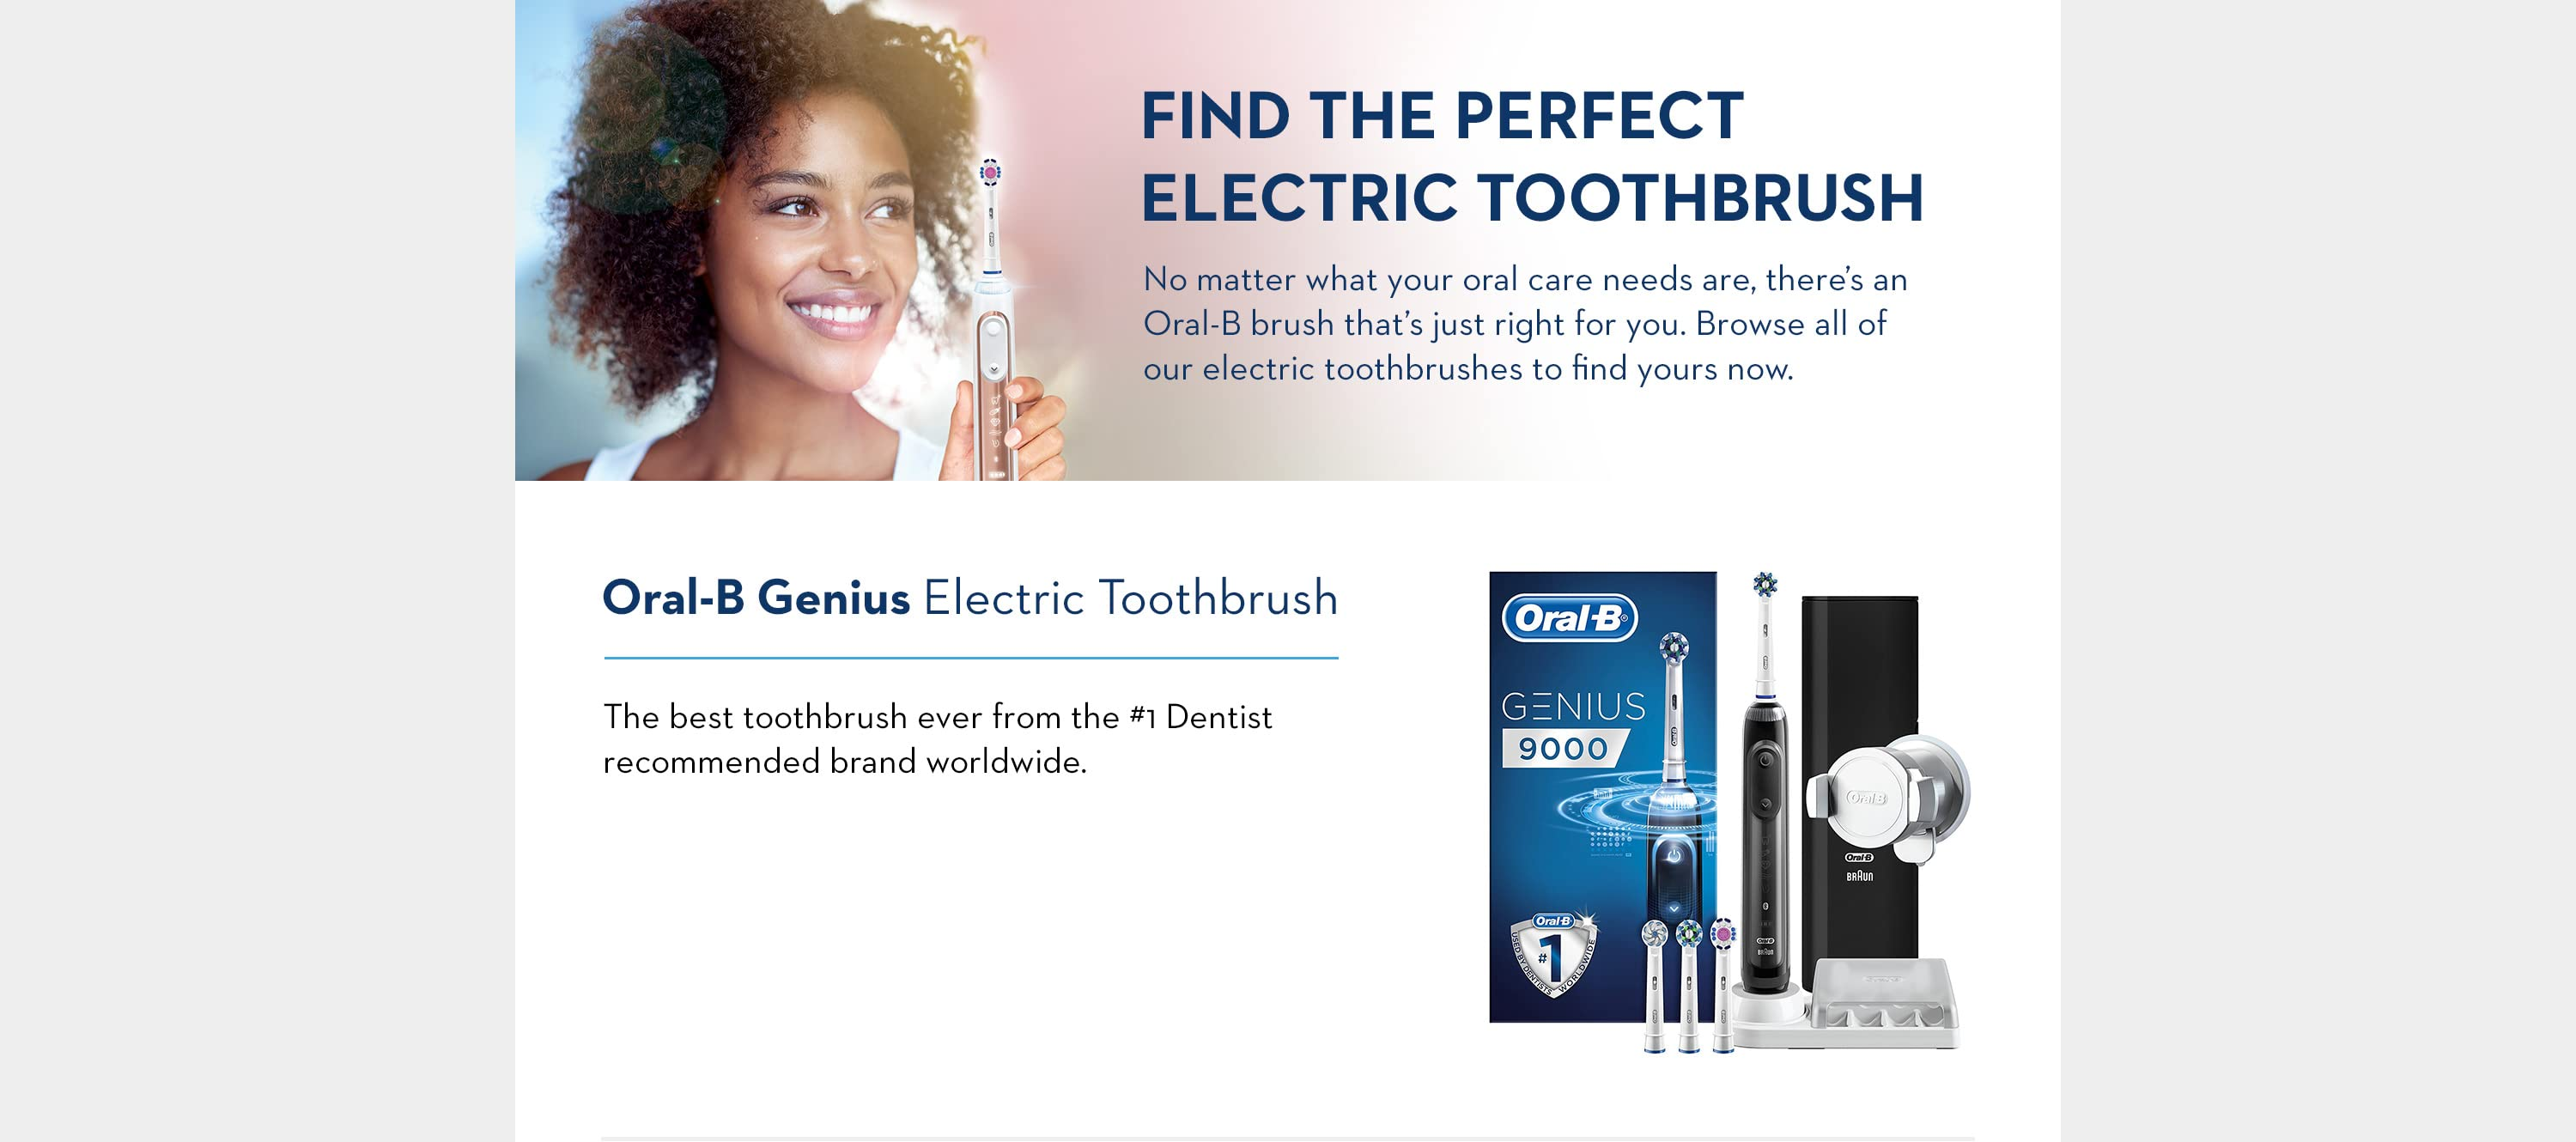 Find the perfect electric toothbrush. Oral-B Genius Electric Toothbrush.